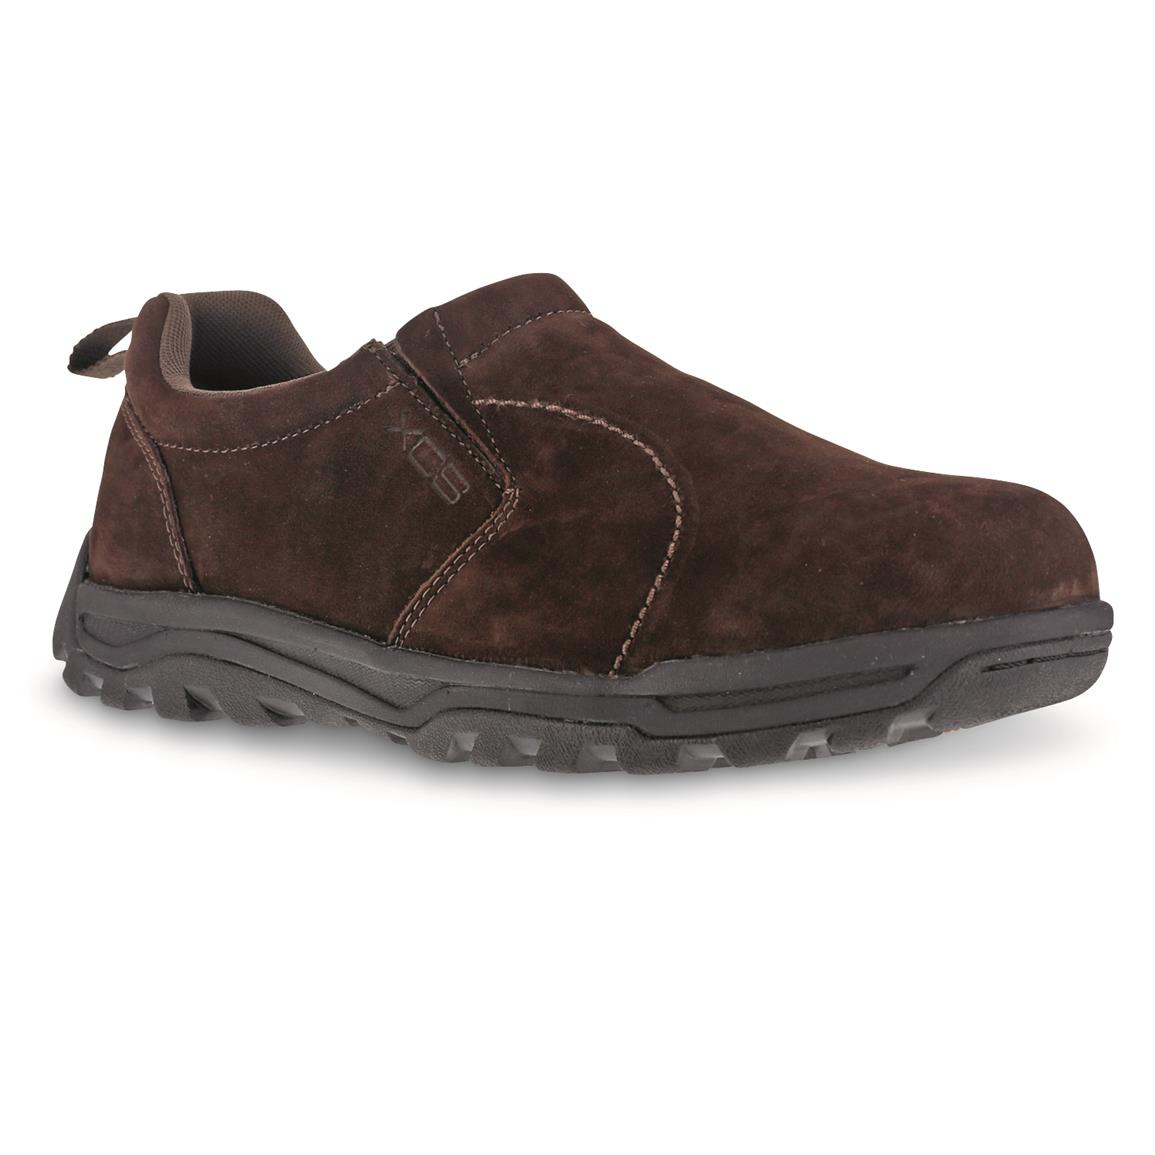 Rockport Works Men's Trail Technique Slip On Trail Jungle Mocs, Brown